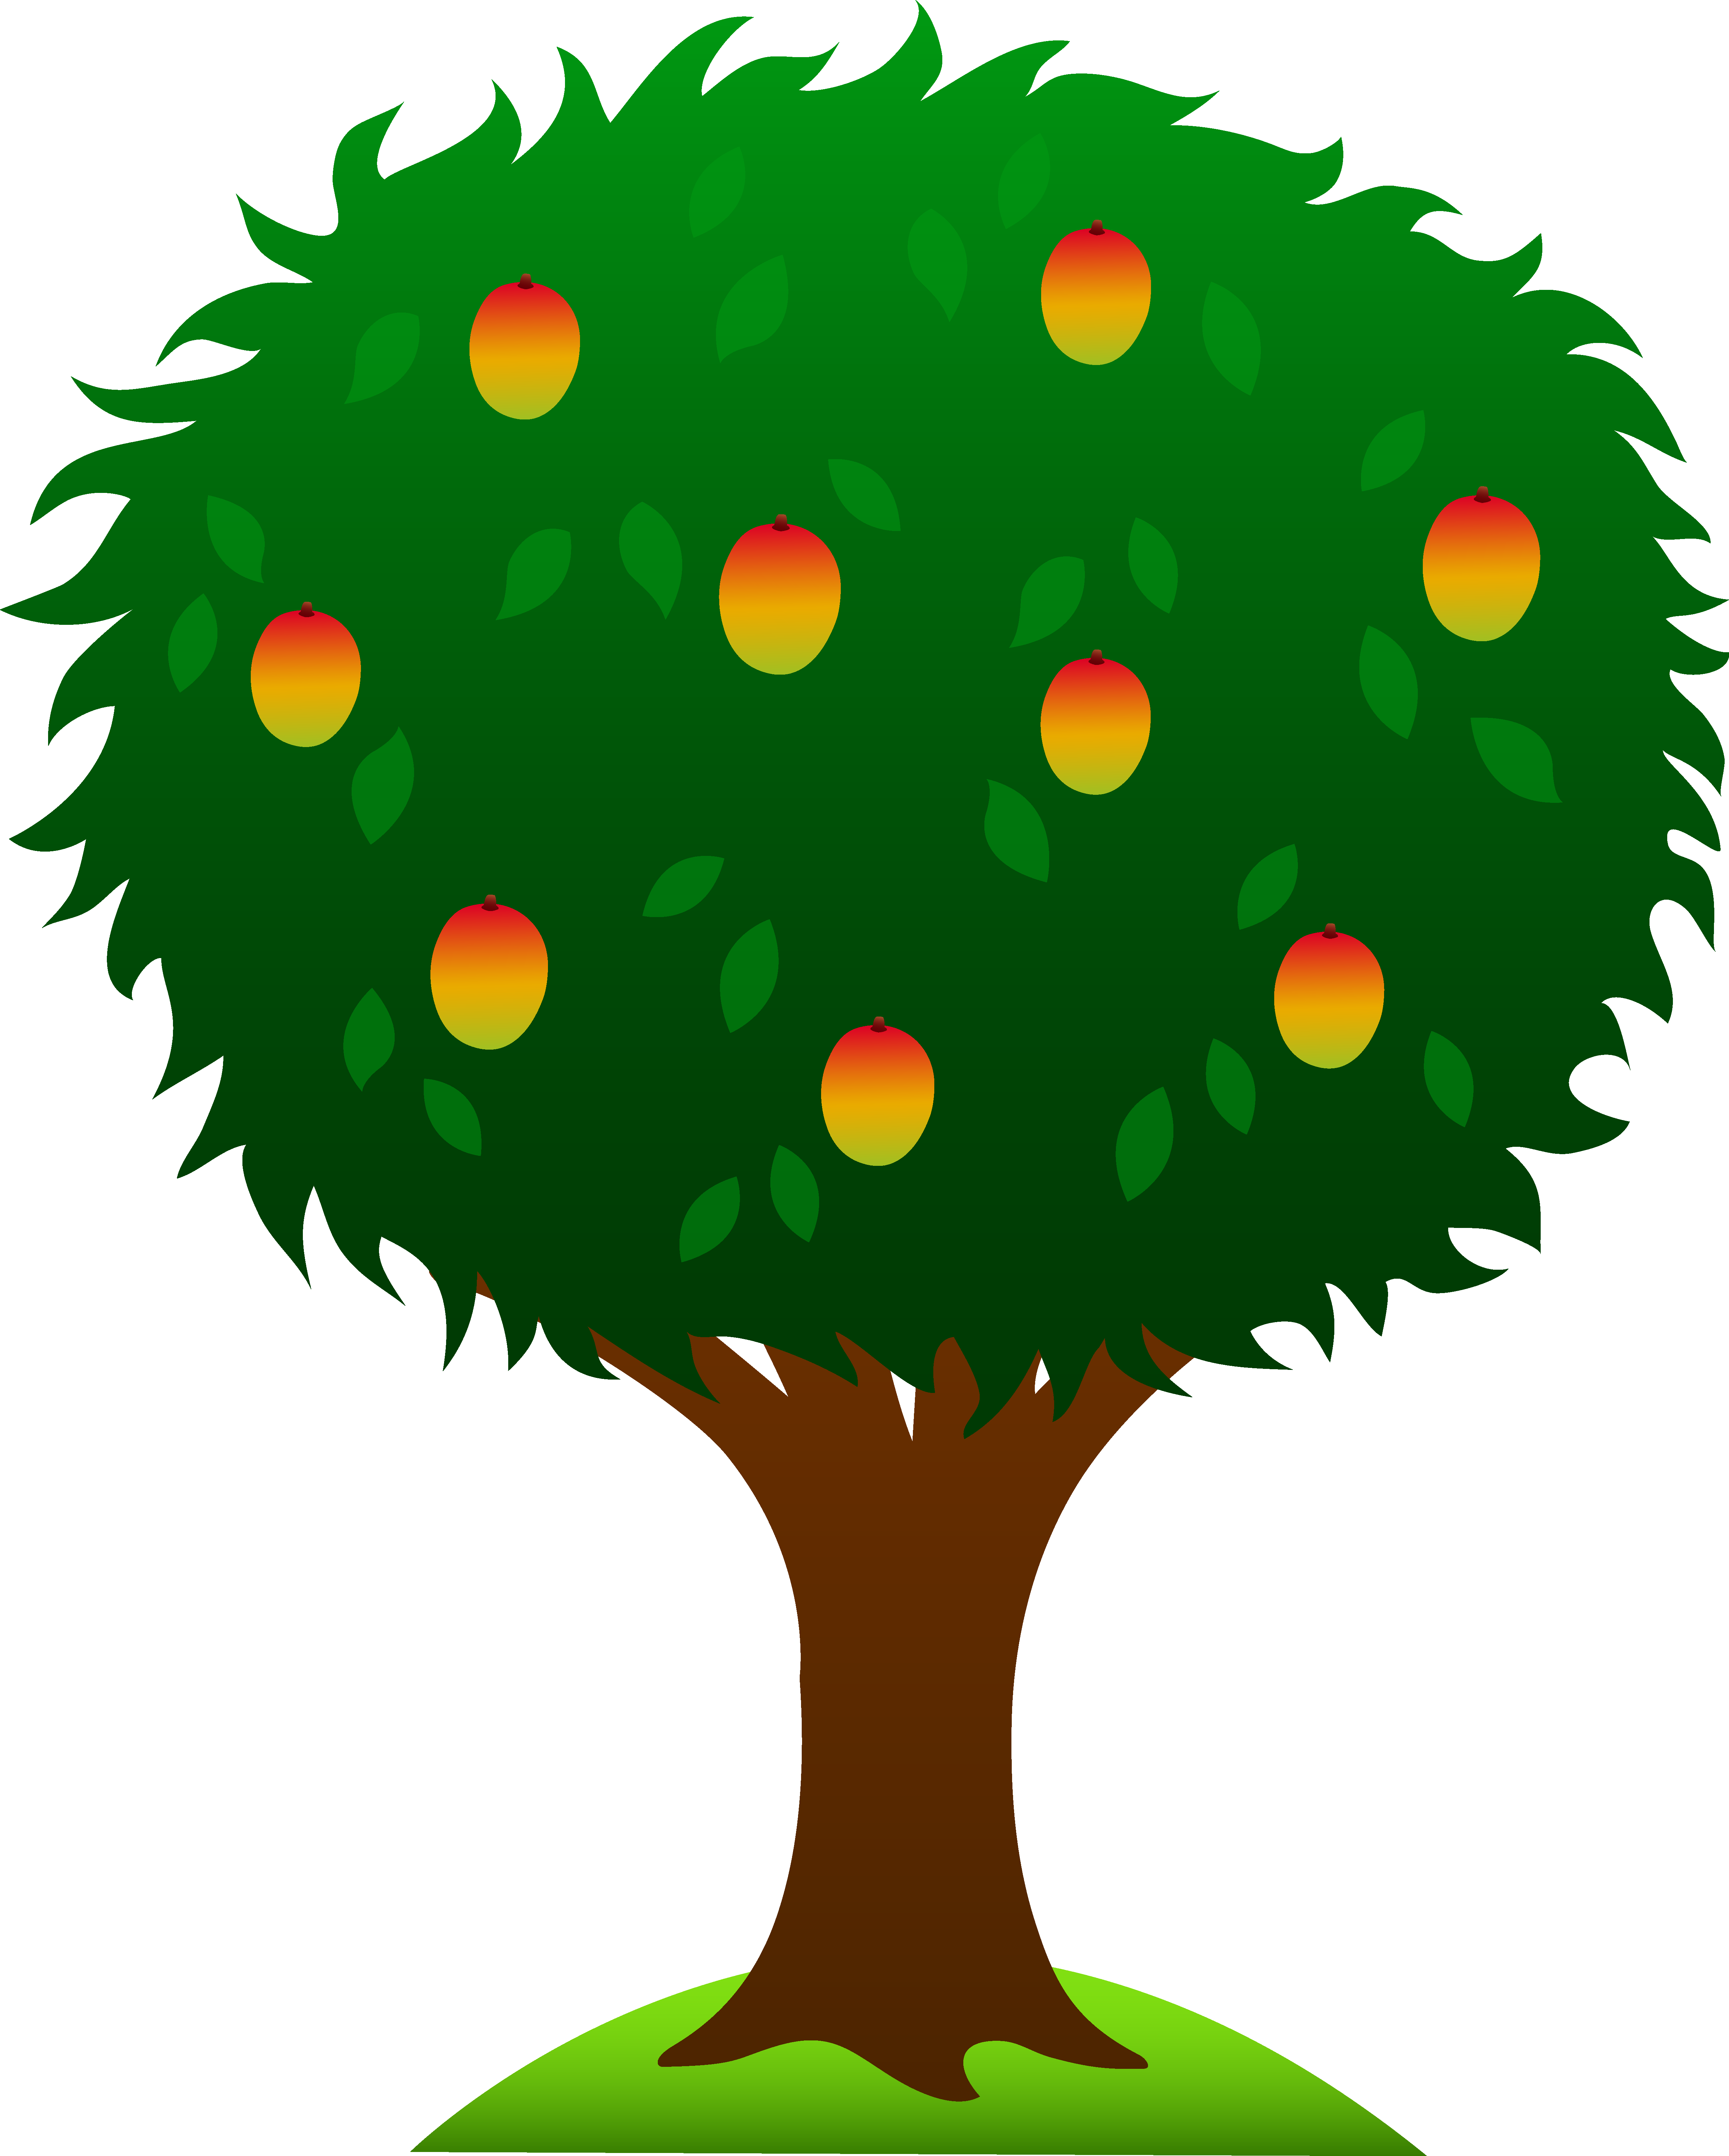 Free Cartoon Tree, Download Free Clip Art, Free Clip Art on.